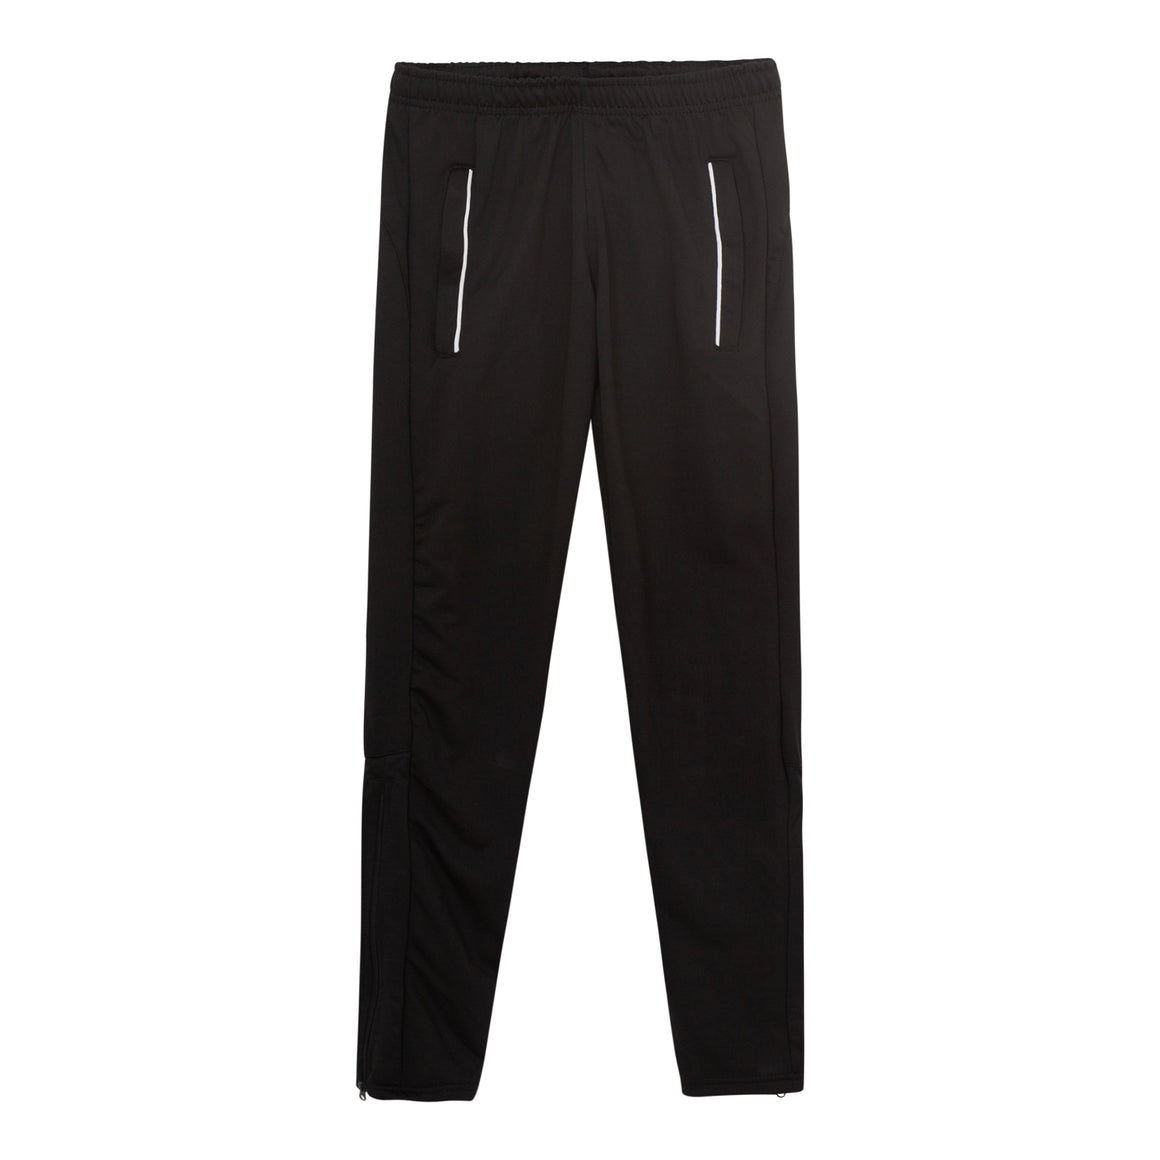 ZR35 Training Trouser for in Black White